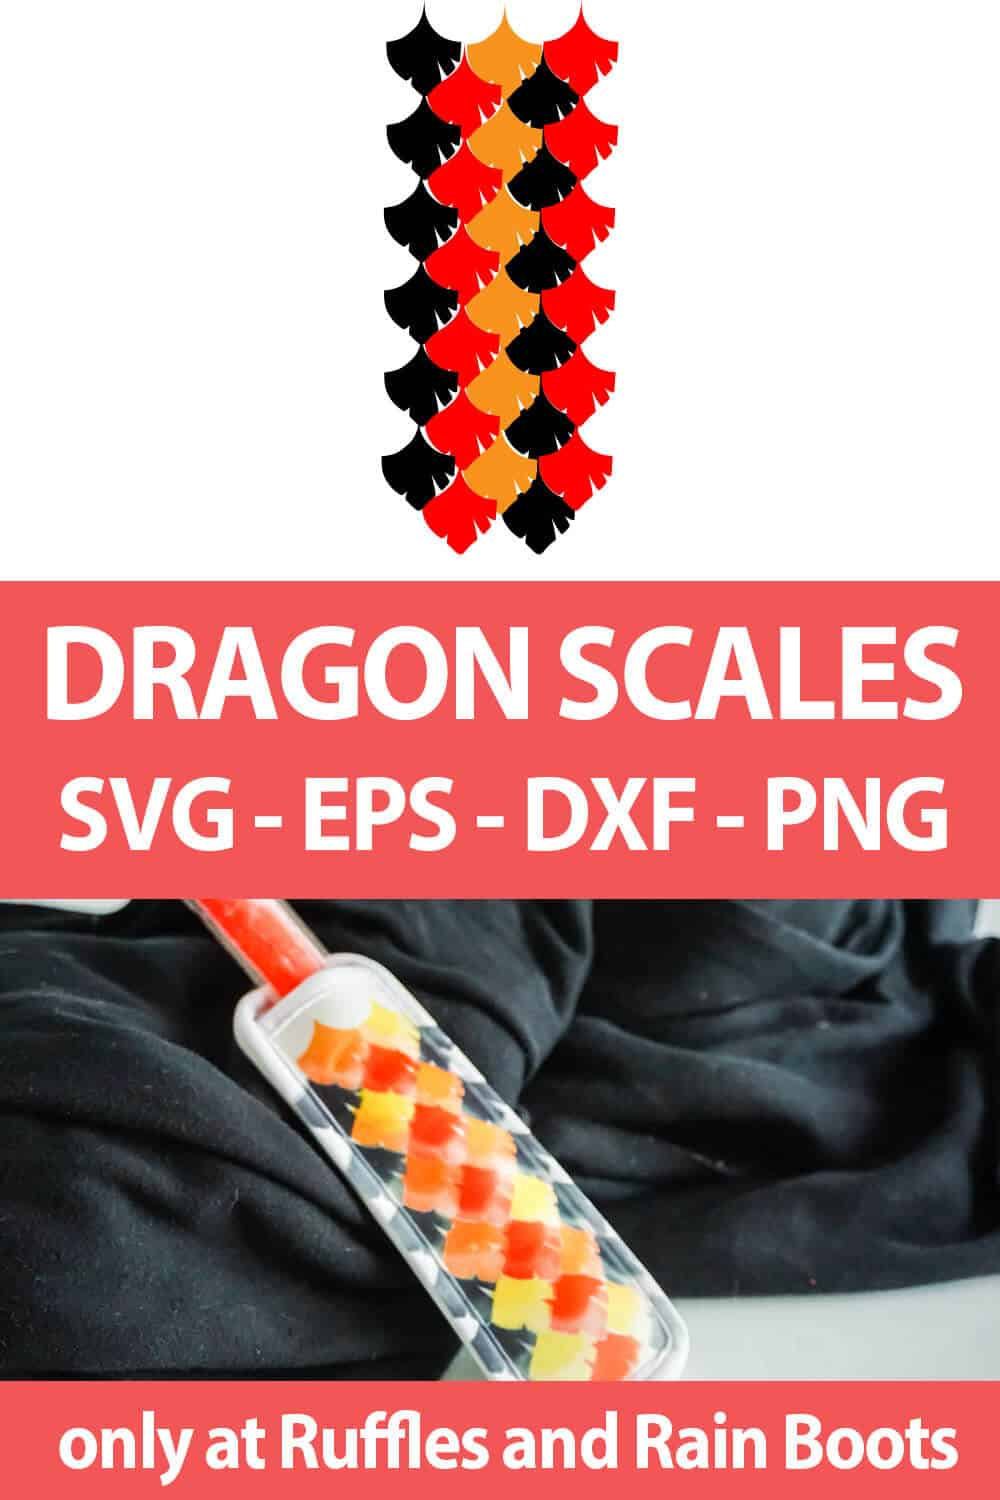 Dragon Scales Svg : dragon, scales, Dragon, Scale, Cricut, Silhouette, Ruffles, Boots